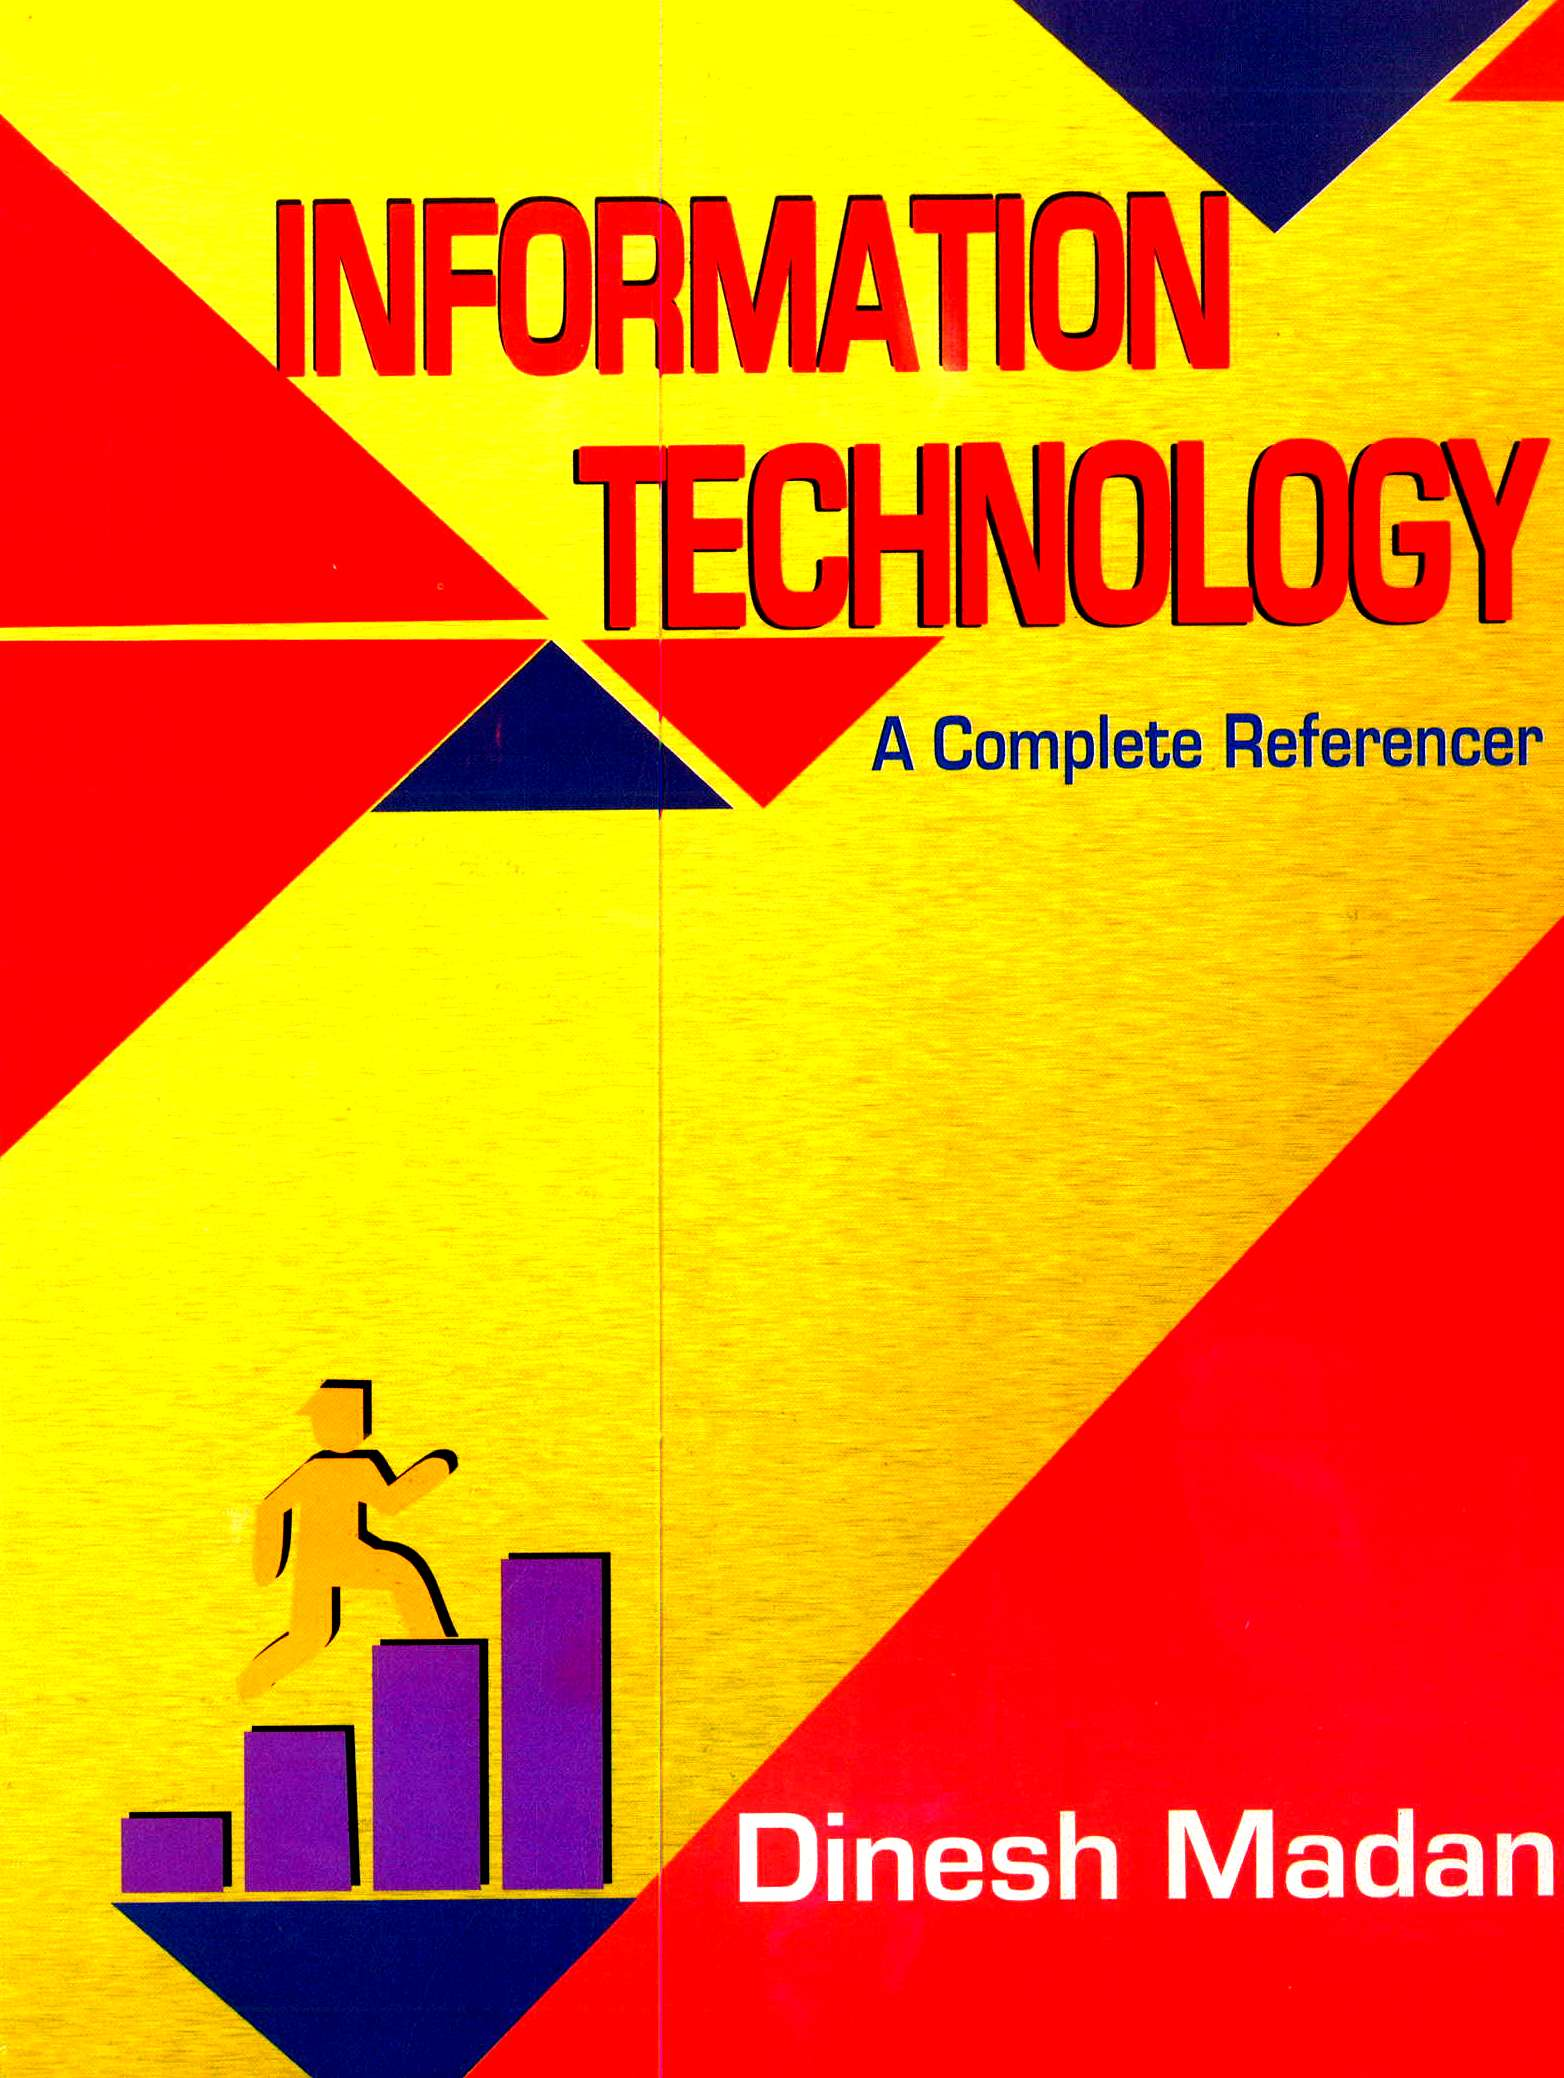 Pooja Law House A Complete Reference Information Technology For CA IPCC By Dinesh Madan Applicable for May 2018 Exam (Pooja Law House Publishing) Edition Jan 2018